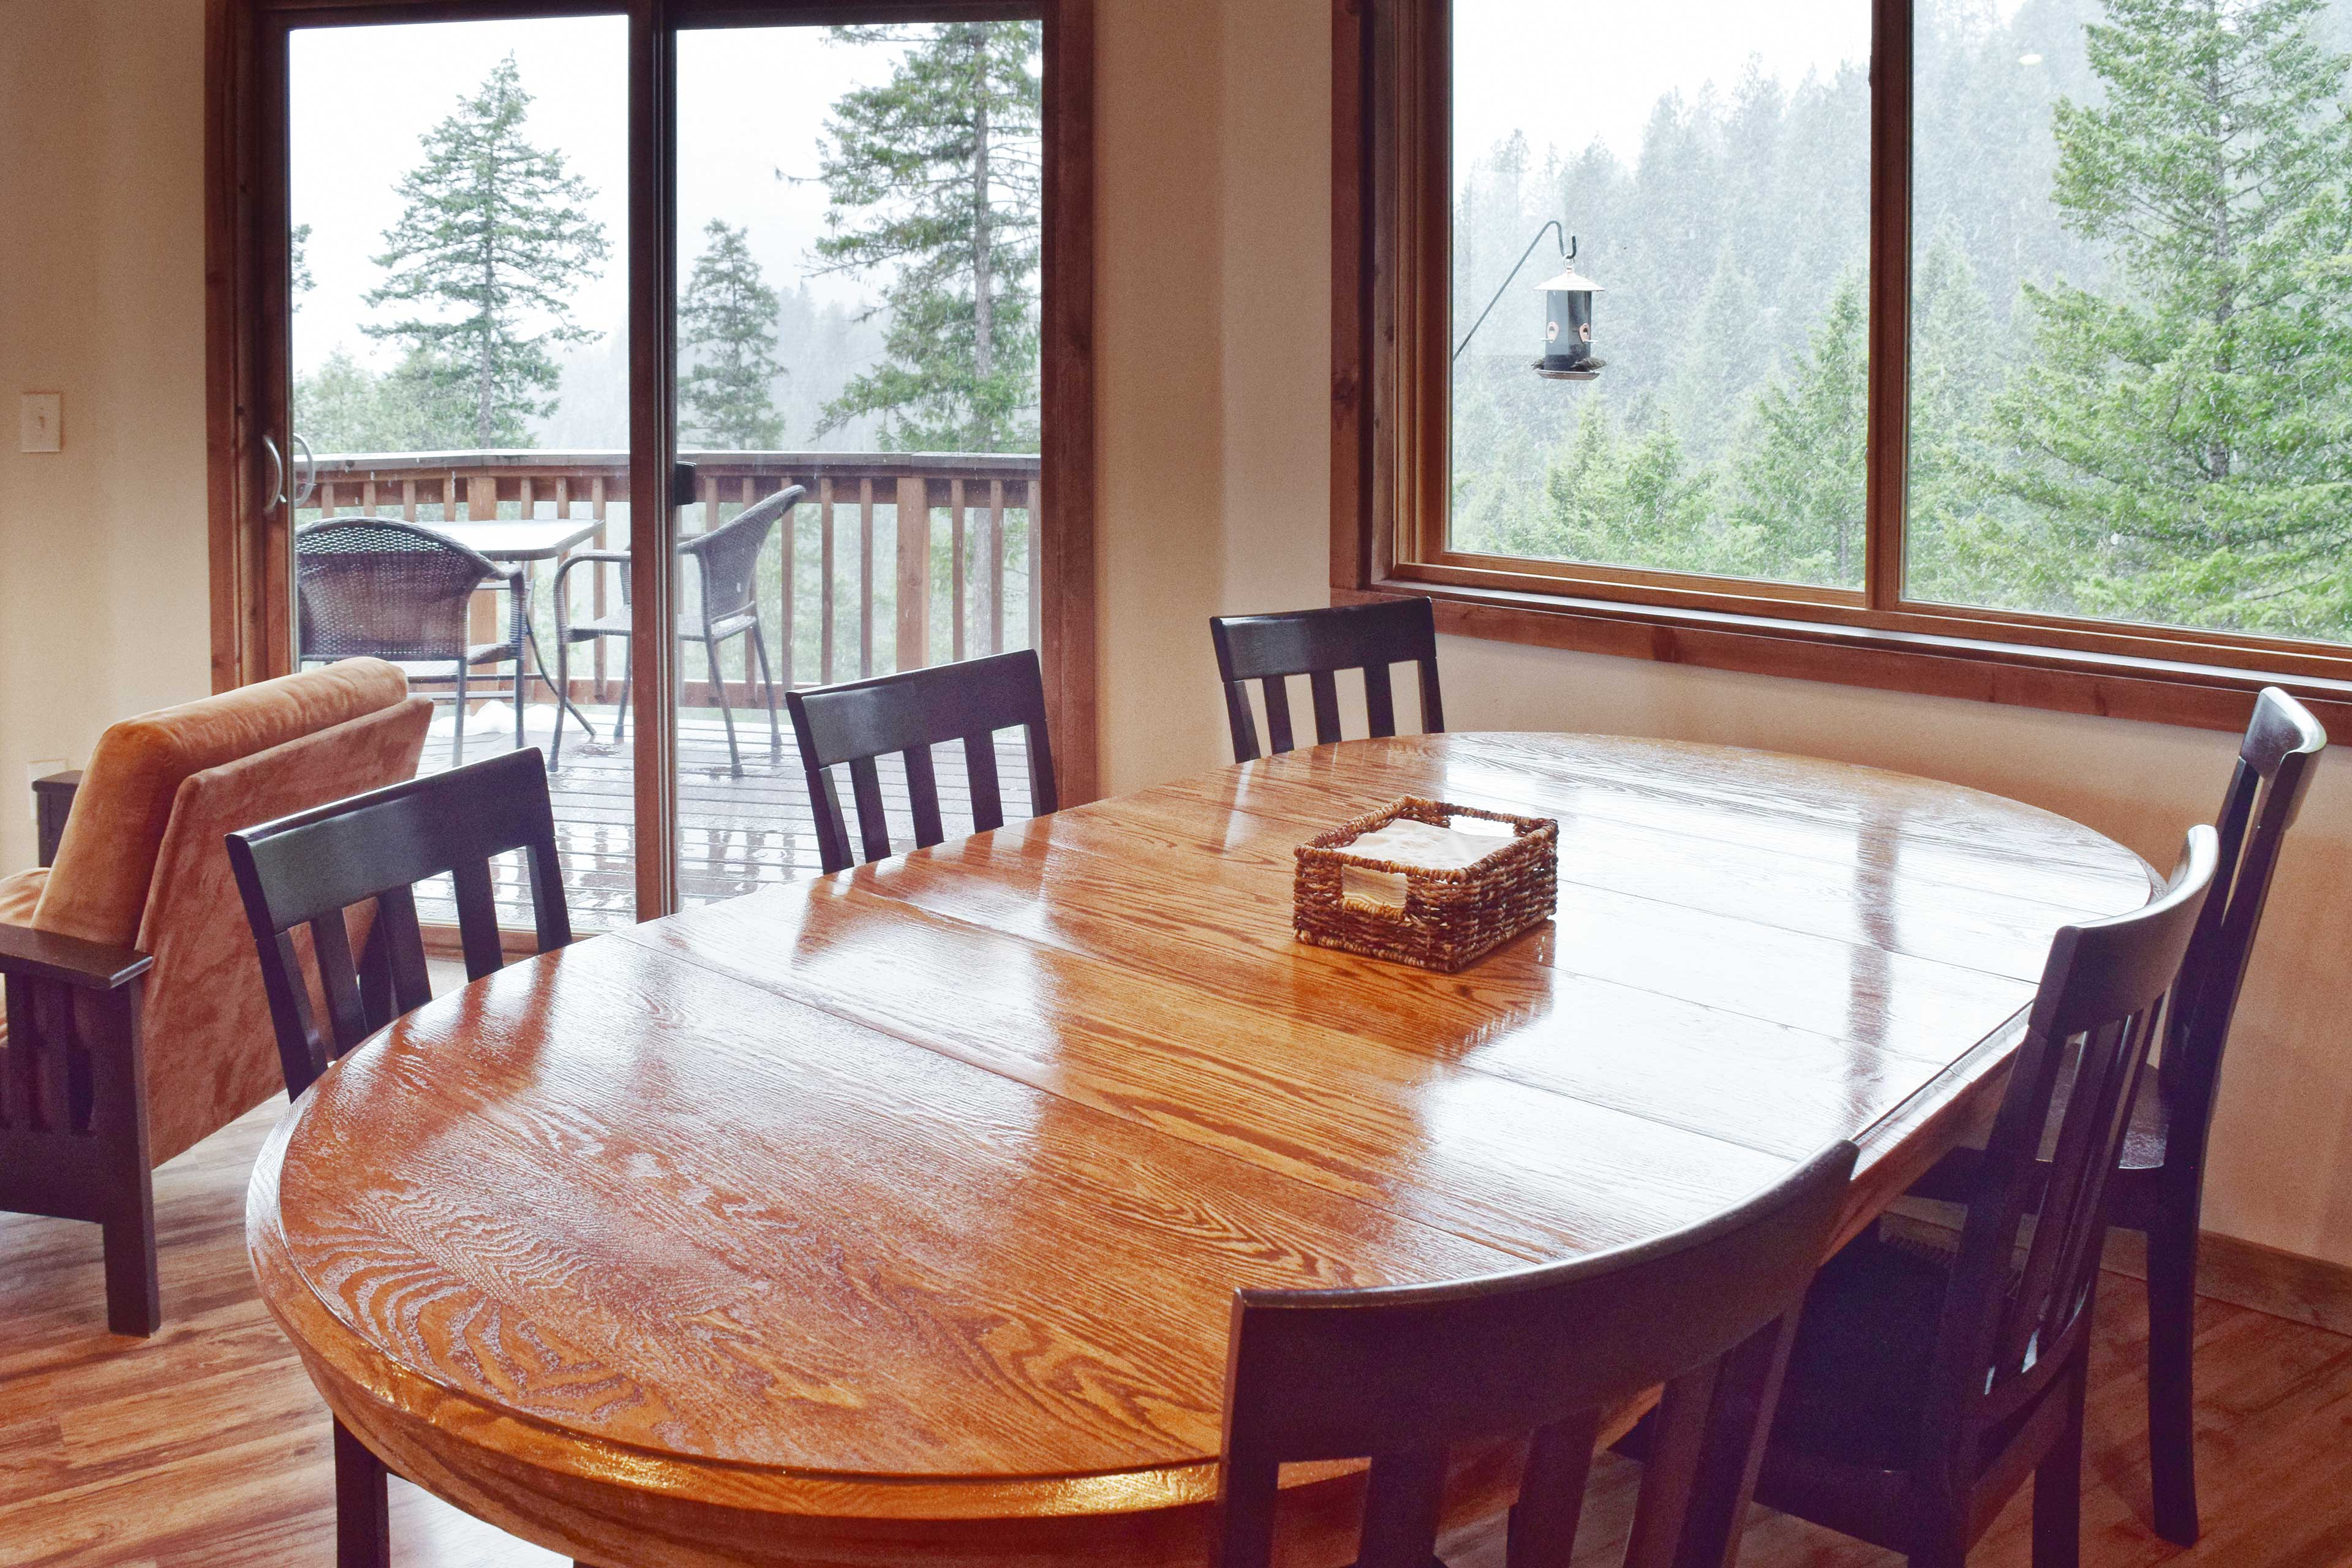 Savor meals with your loved ones at the dining table.